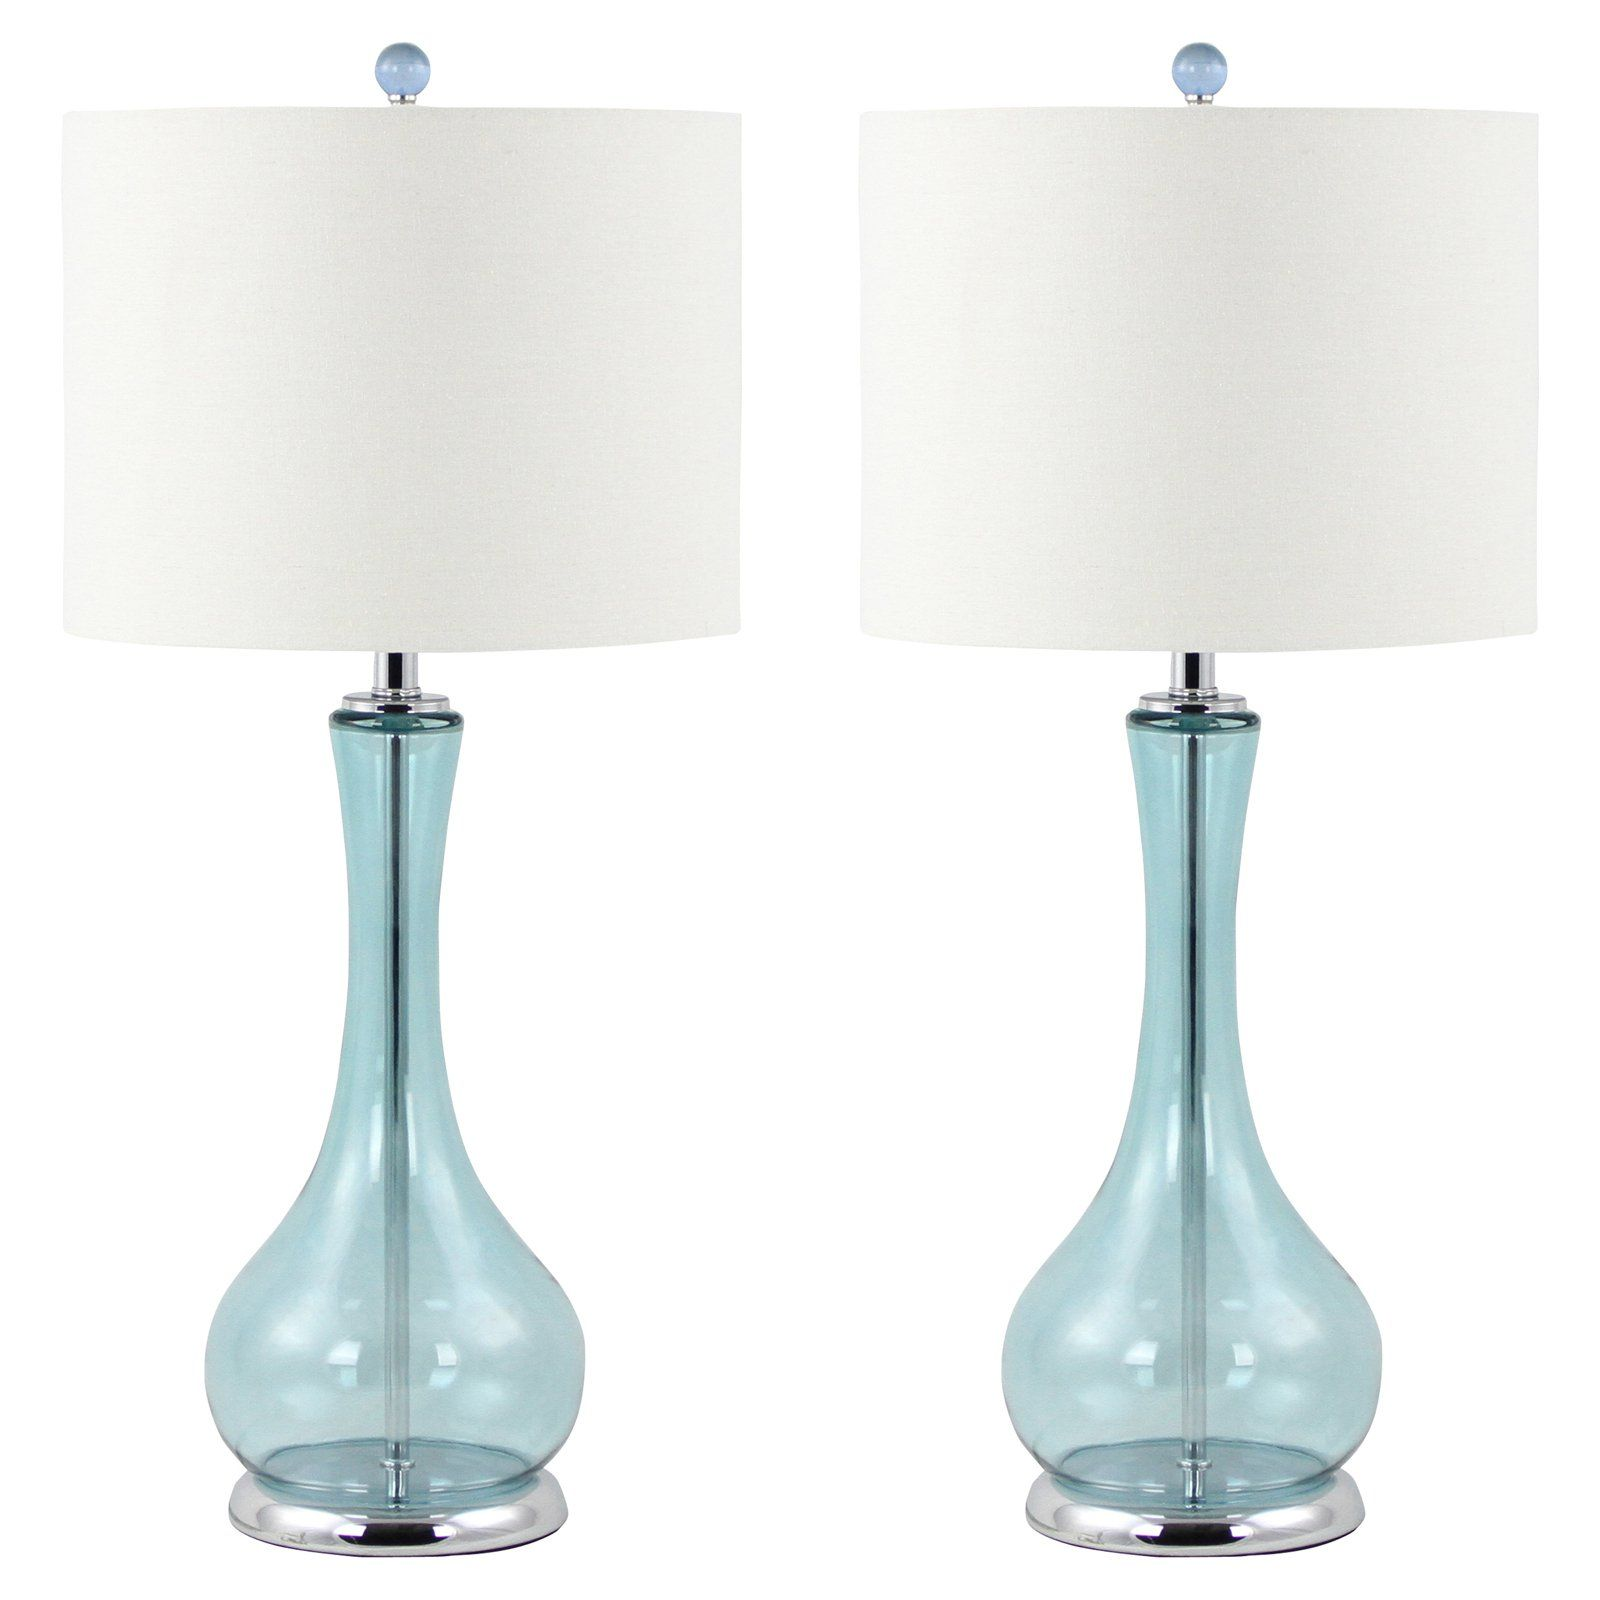 Aspire home accents josie table lamp set ocean blue vase shaped aspire home accents josie table lamp set ocean blue vase shaped glass bases create aloadofball Image collections